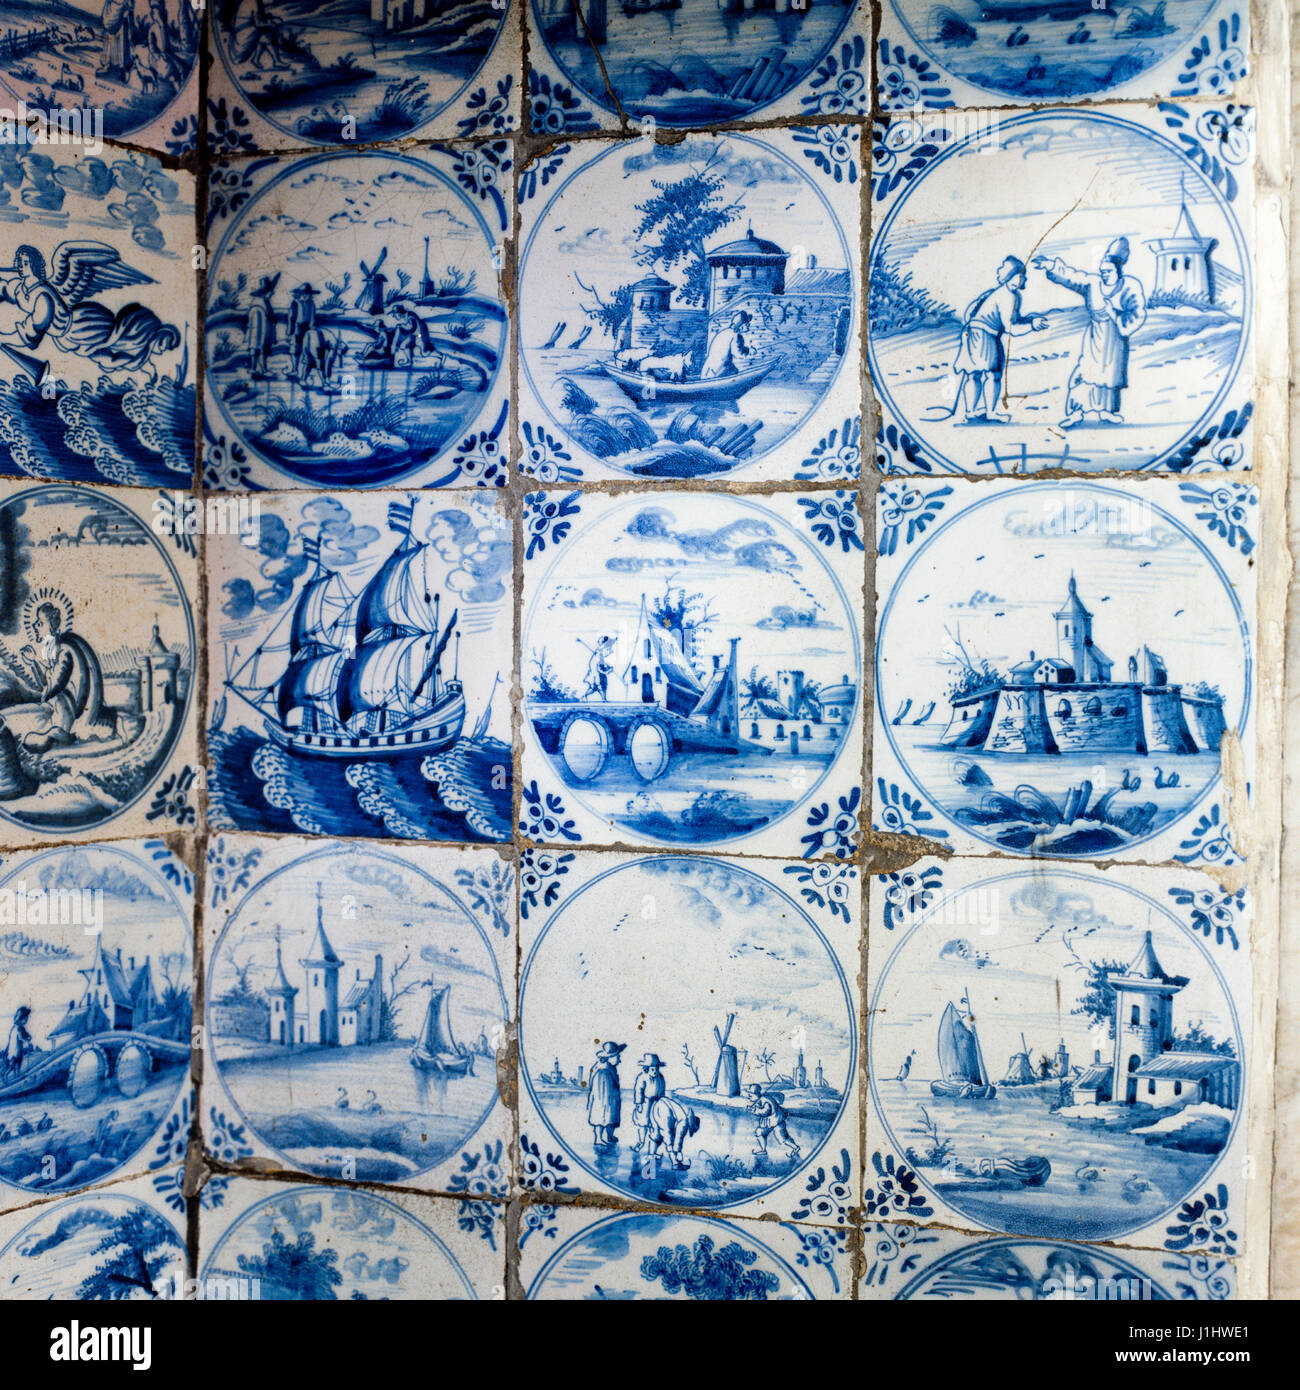 Blue and white illustrated seafaring wall tiles. - Stock Image